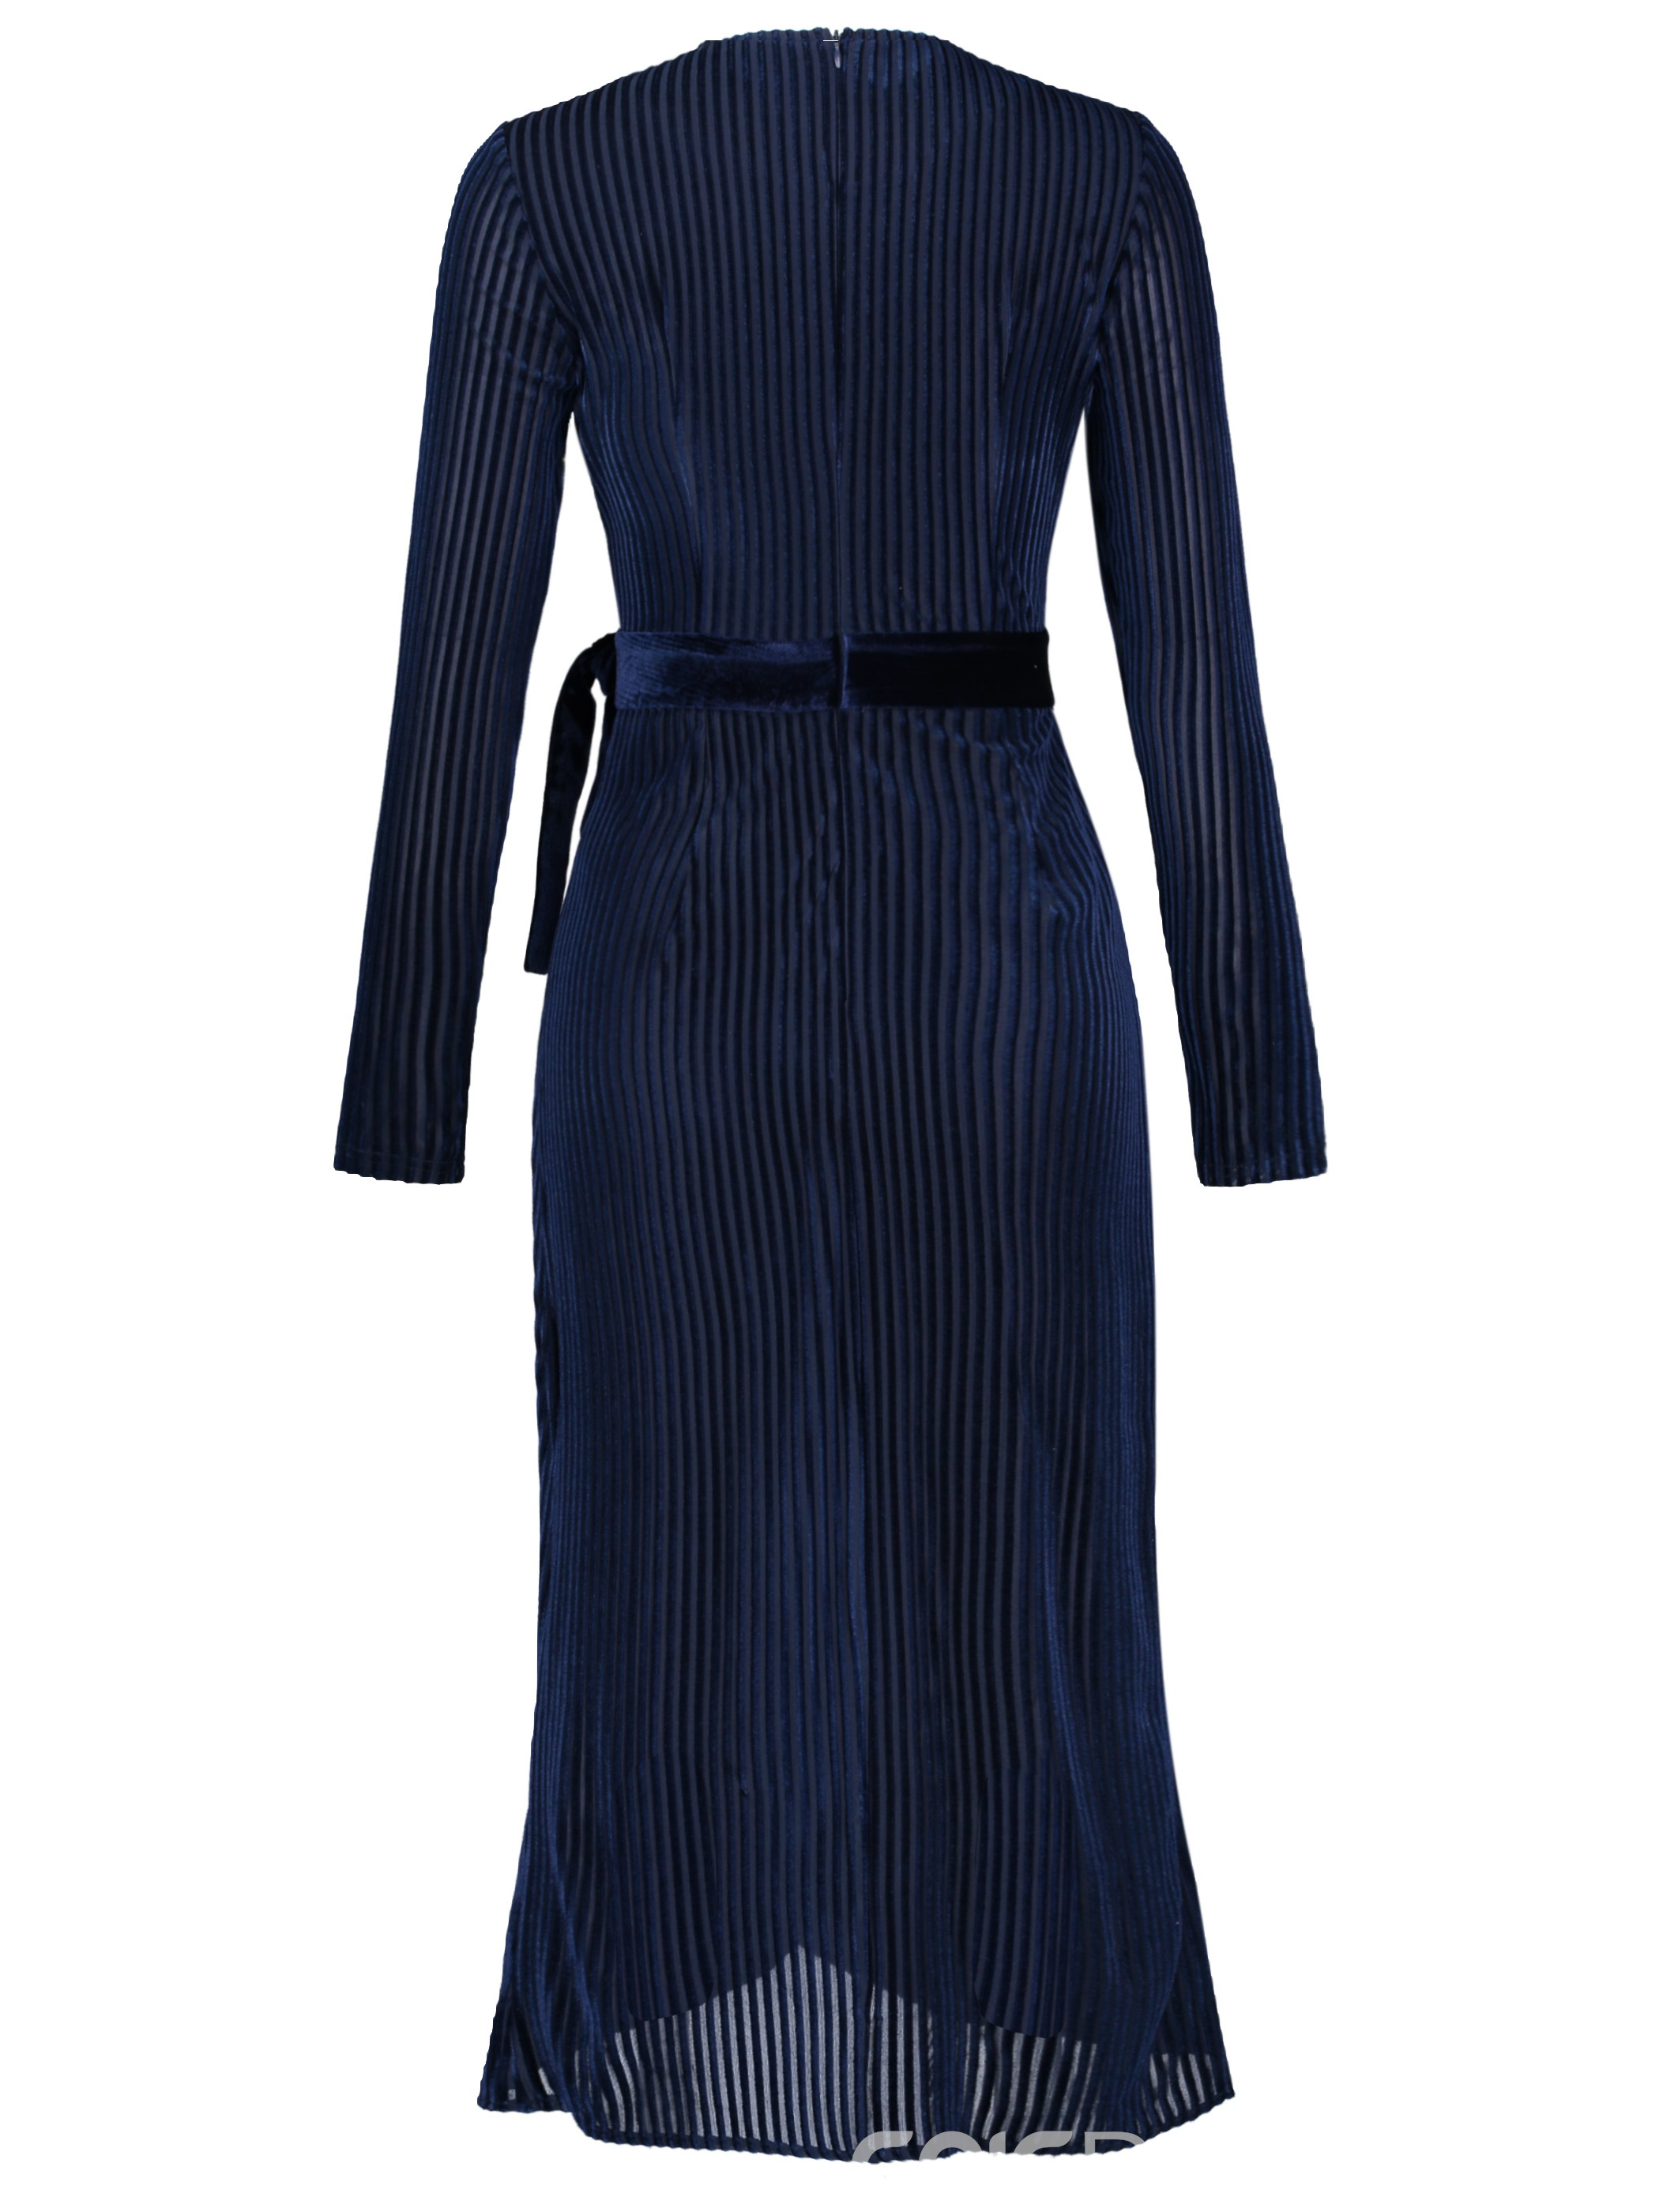 Ericdress Lace-Up V-Neck Ankle-Length Stripe Wear to Work/Workwear Dress